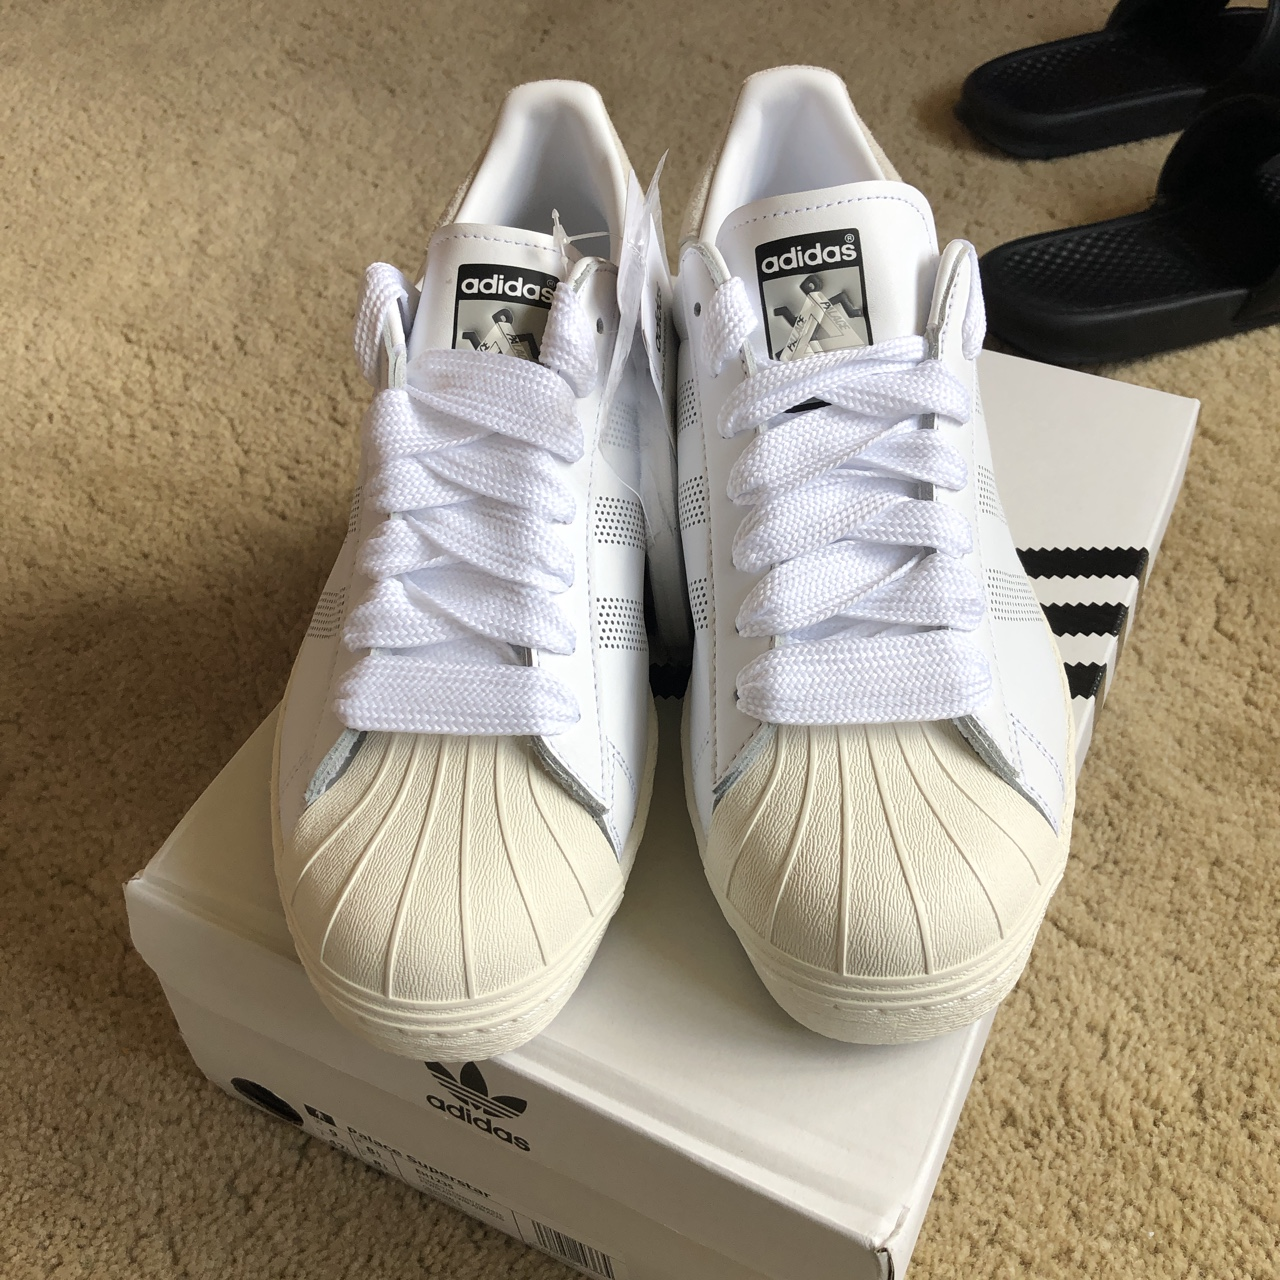 ventana Complejo Amoroso  Palace X Adidas superstar white Sold out instantly... - Depop